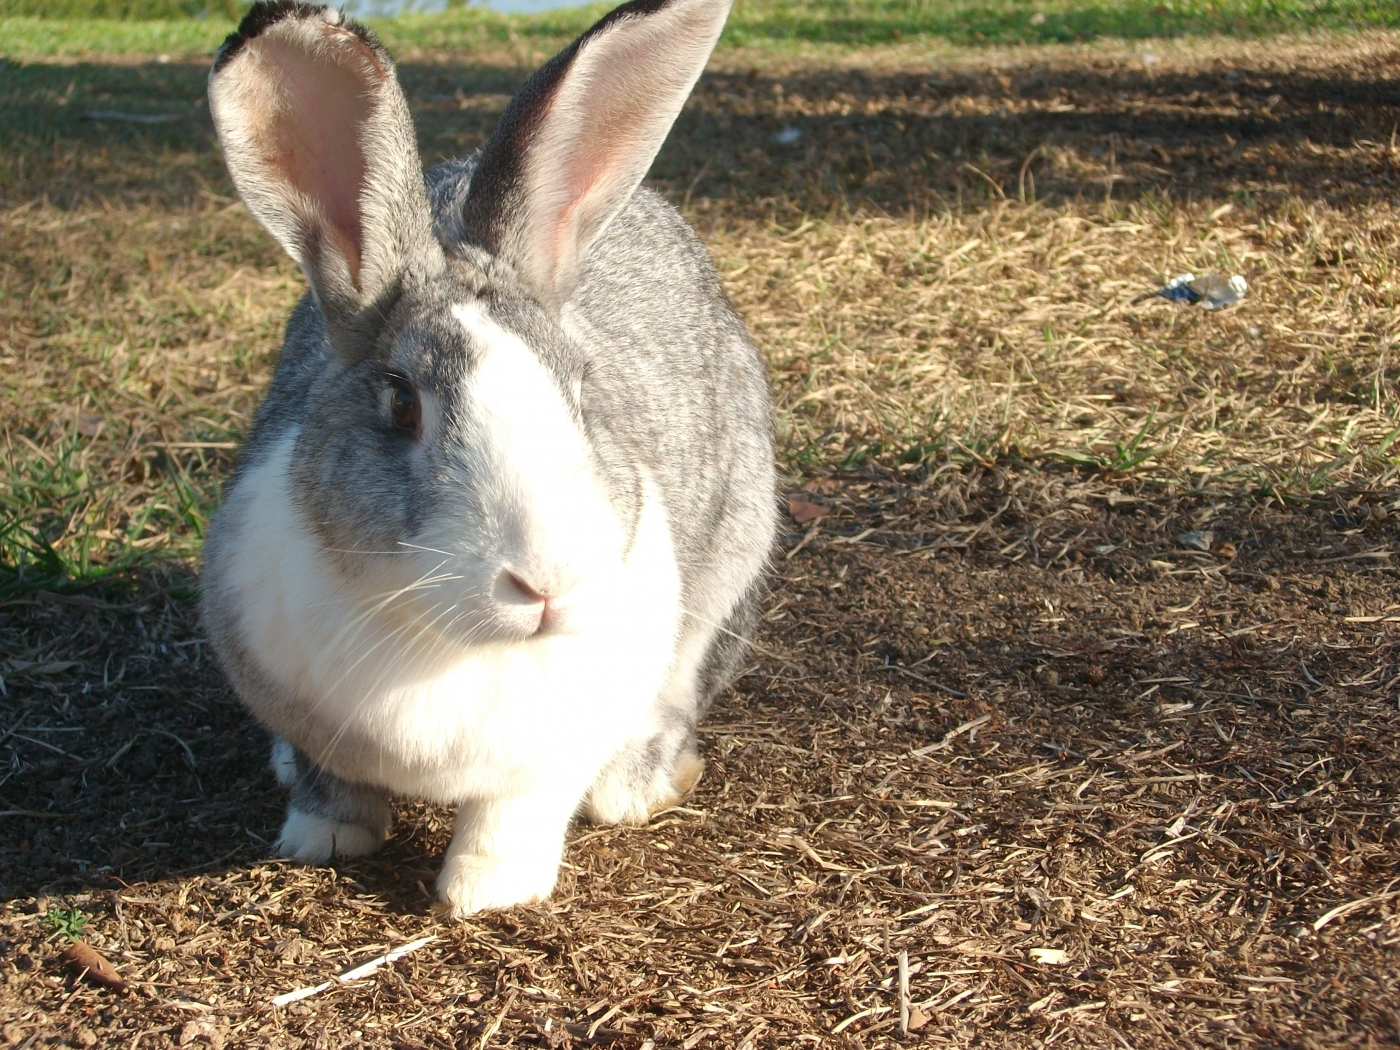 42398 download wallpaper Animals, Rabbits screensavers and pictures for free